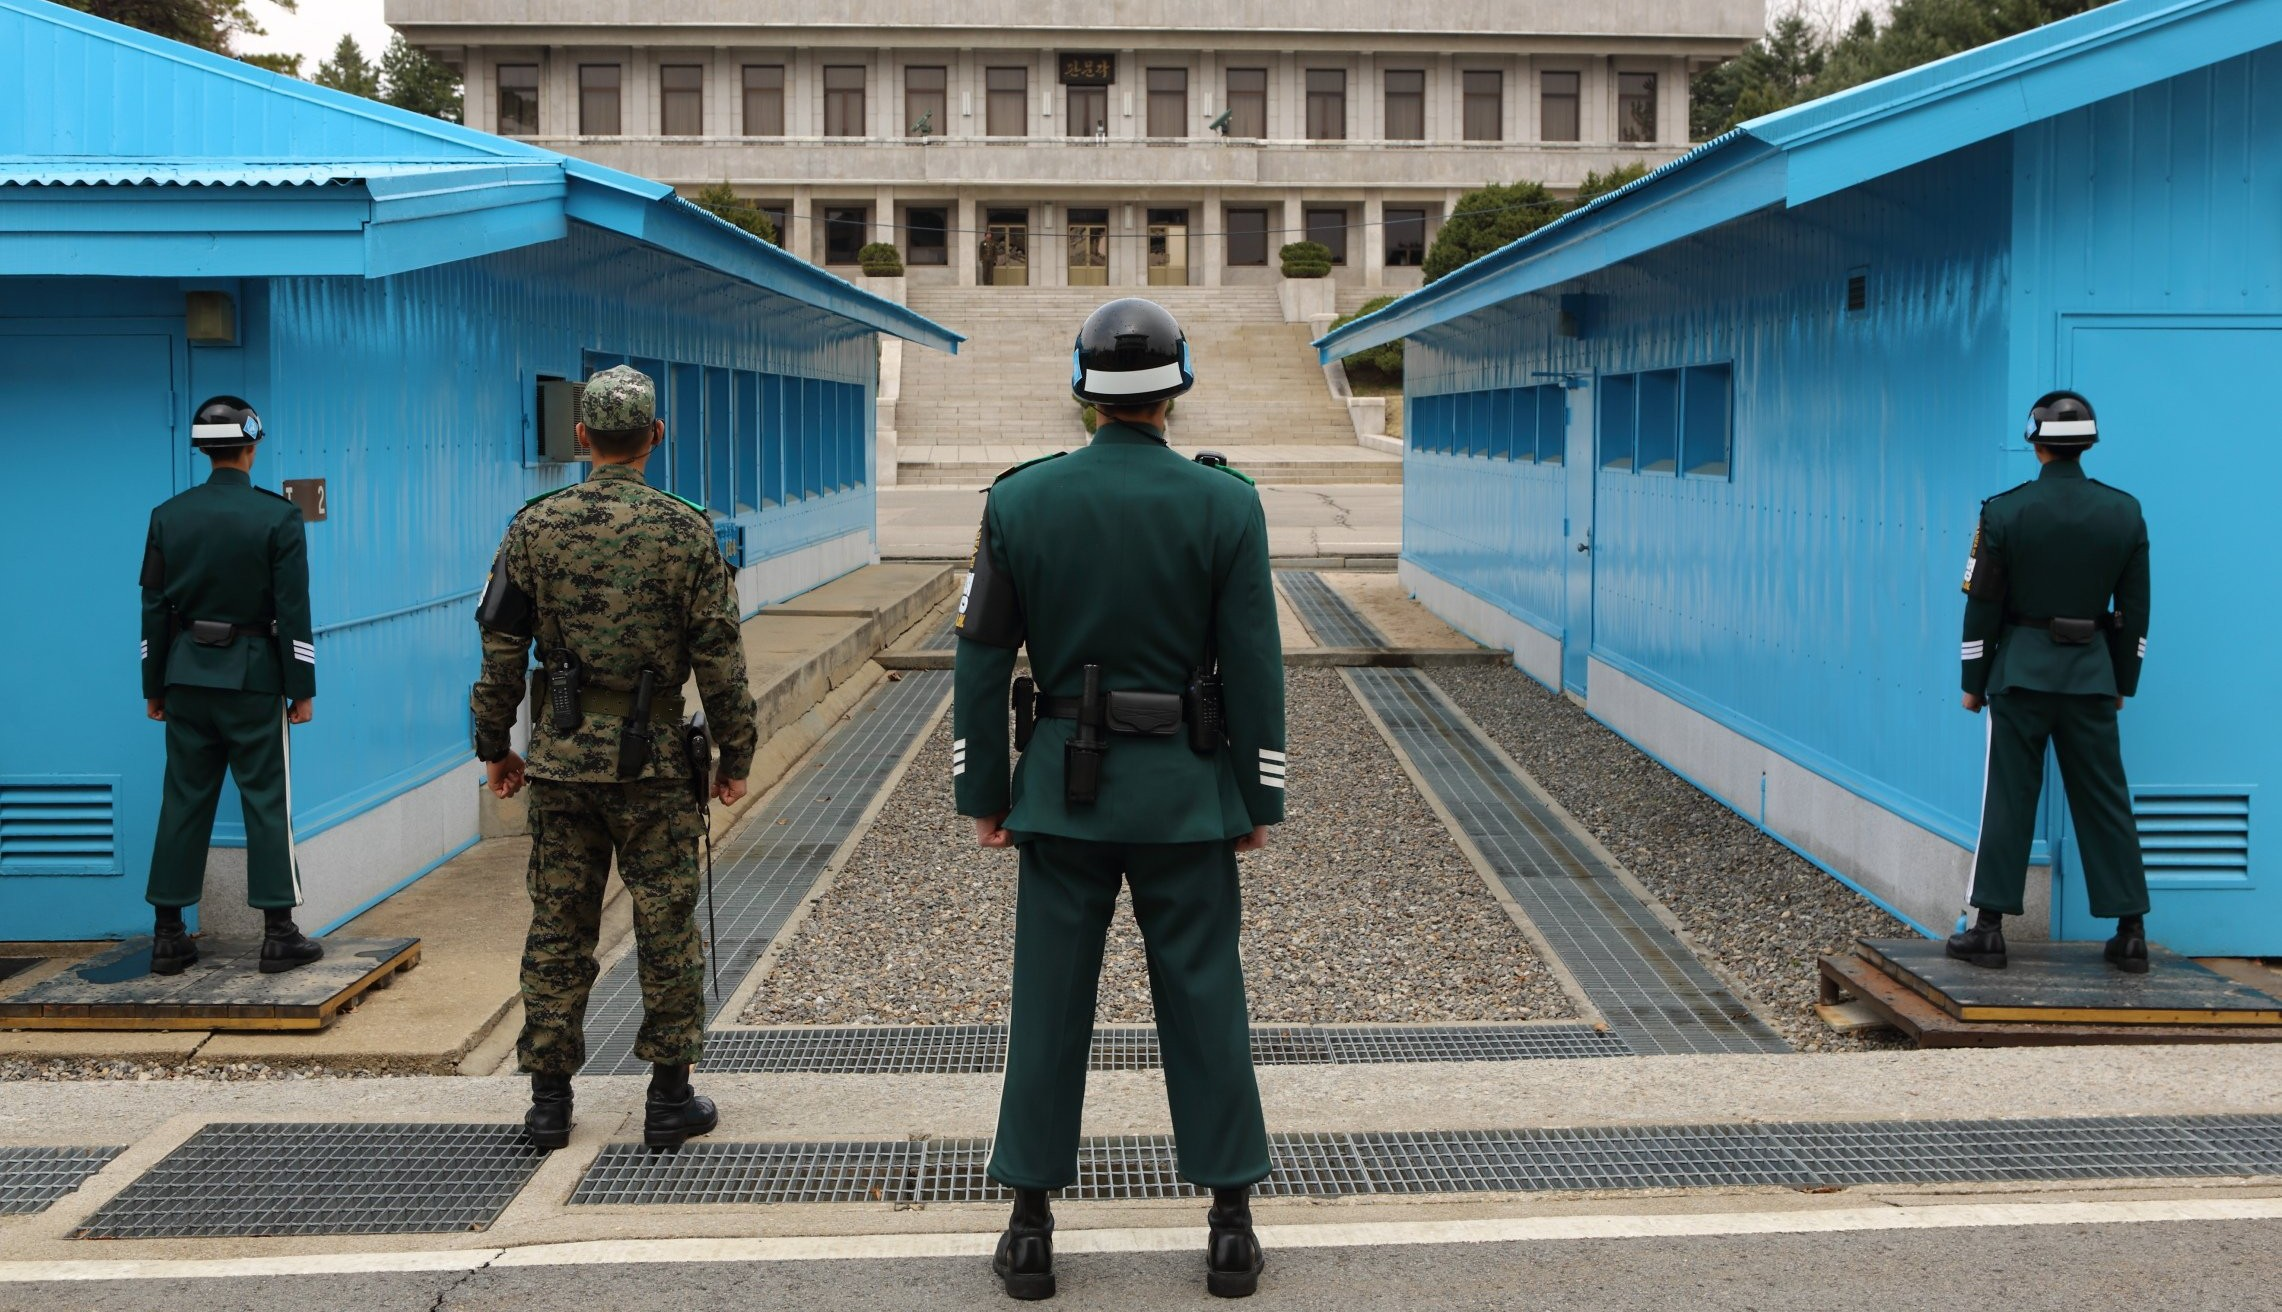 The Demilitarized Zone between North Korea and South Korea stretches for 160 miles and is approximately 2.5 miles wide. (Credit: CNN)